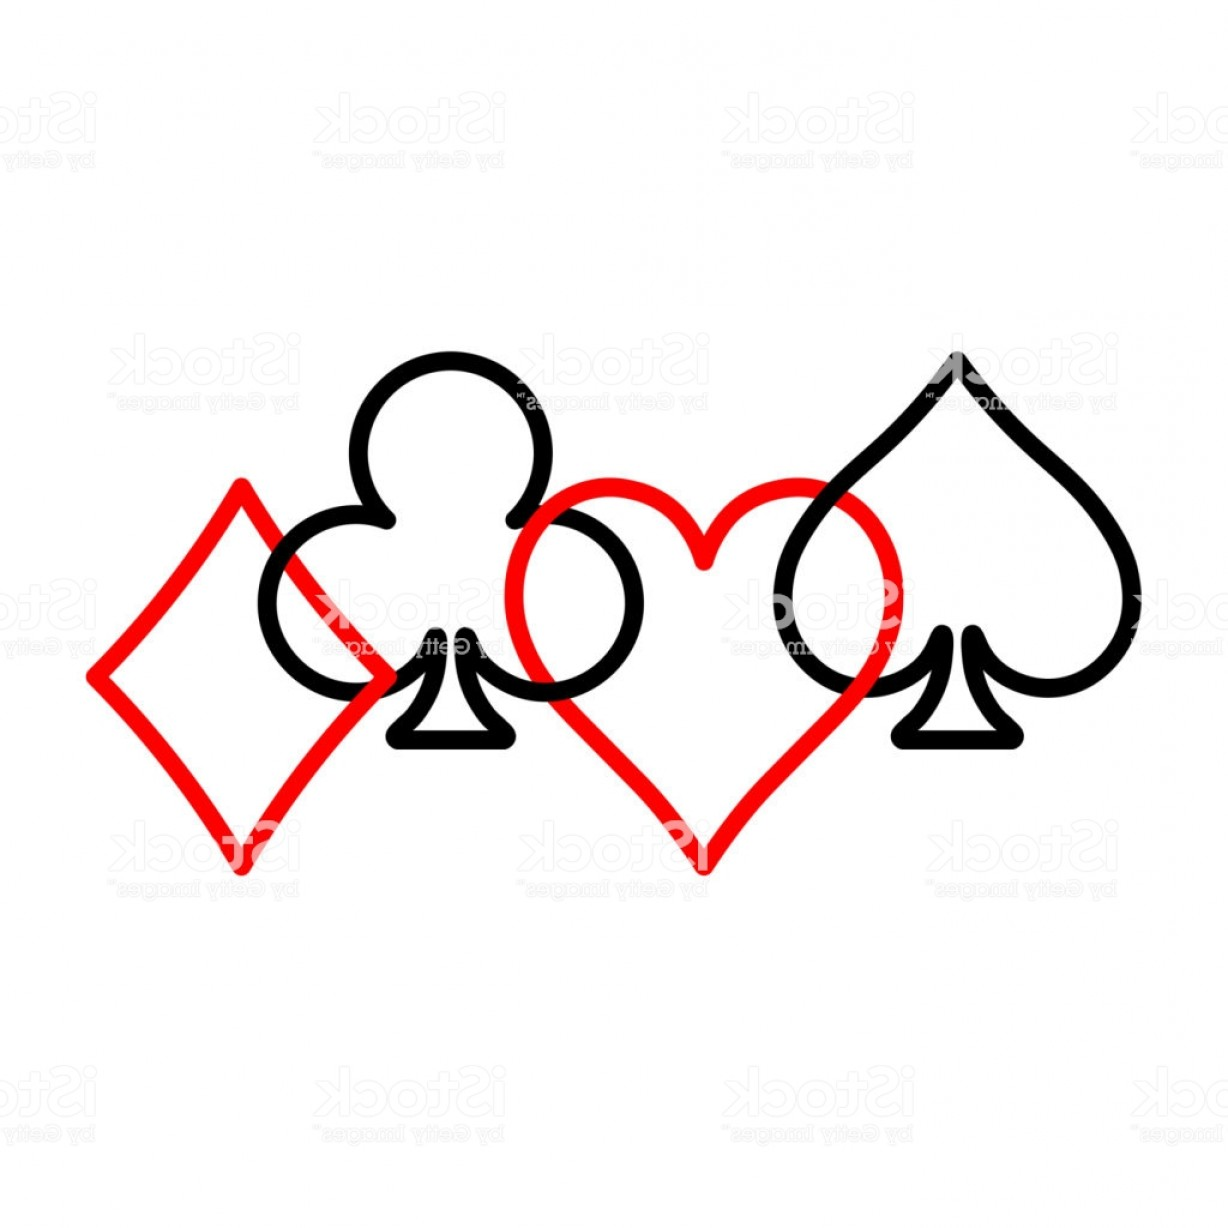 Card Suits Vector Outlines: Poker Card Suits Hearts Clubs Spades And Diamonds On White Background Casino Gm